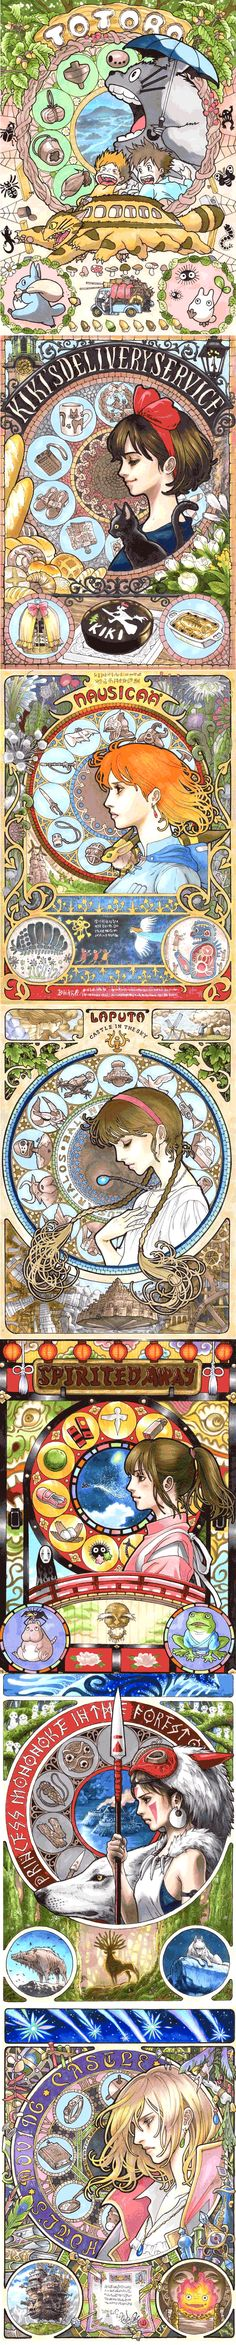 Art Nouveau was a decorative style of arts and architecture that was prominent in late 19th and early 20th century. The style focuses on characterization o